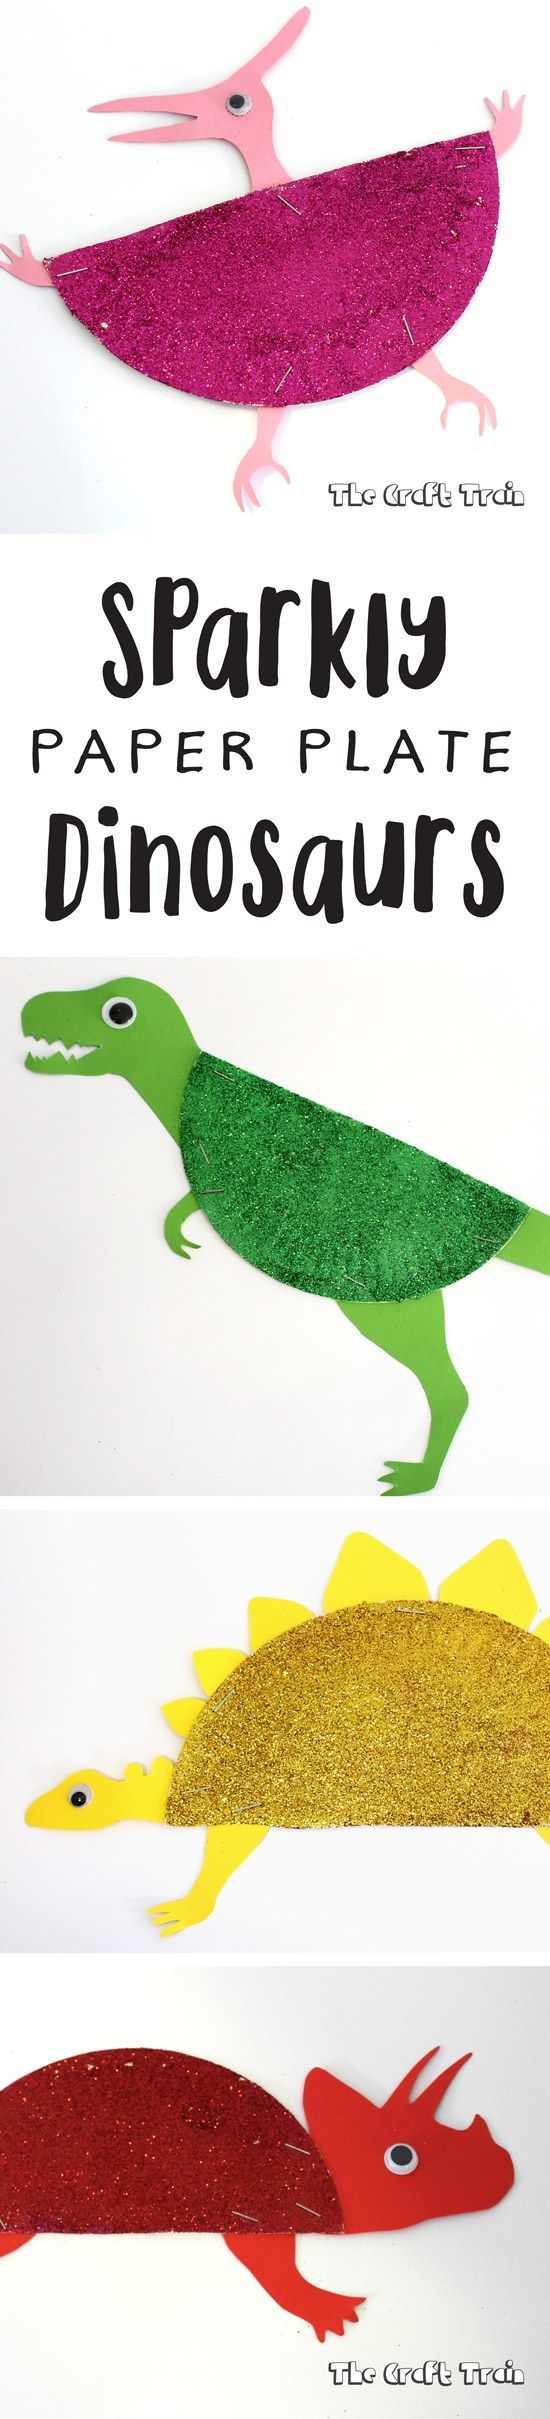 Sparkly Paper Plate Dinosaurs | Dinosaur crafts, Free printable and ...